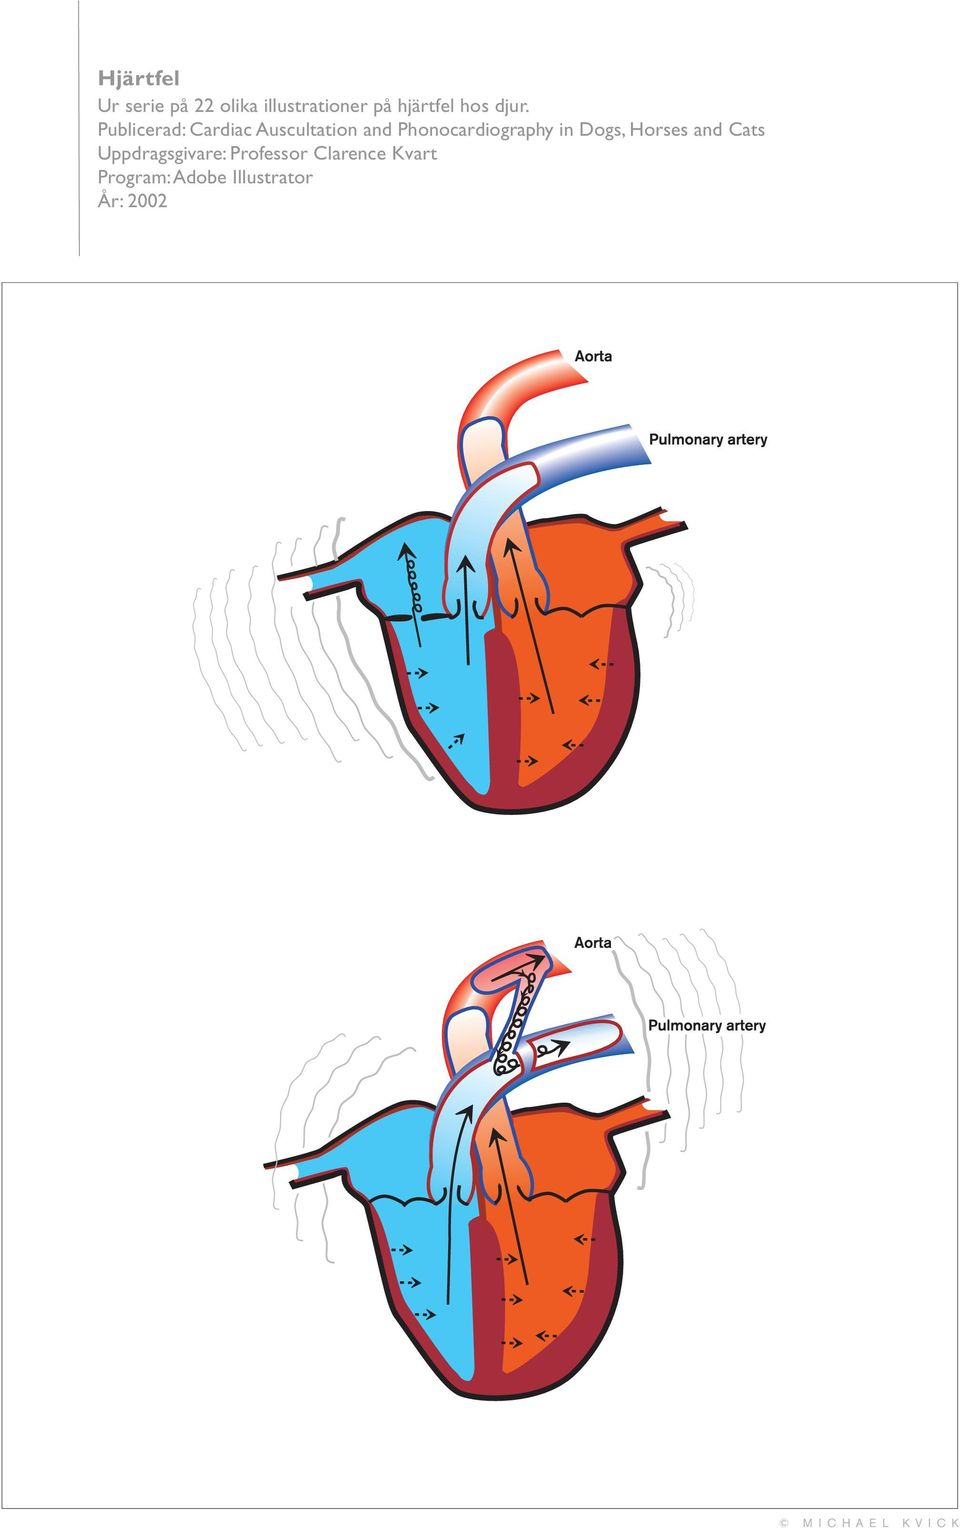 Publicerad: Cardiac Auscultation and Phonocardiography